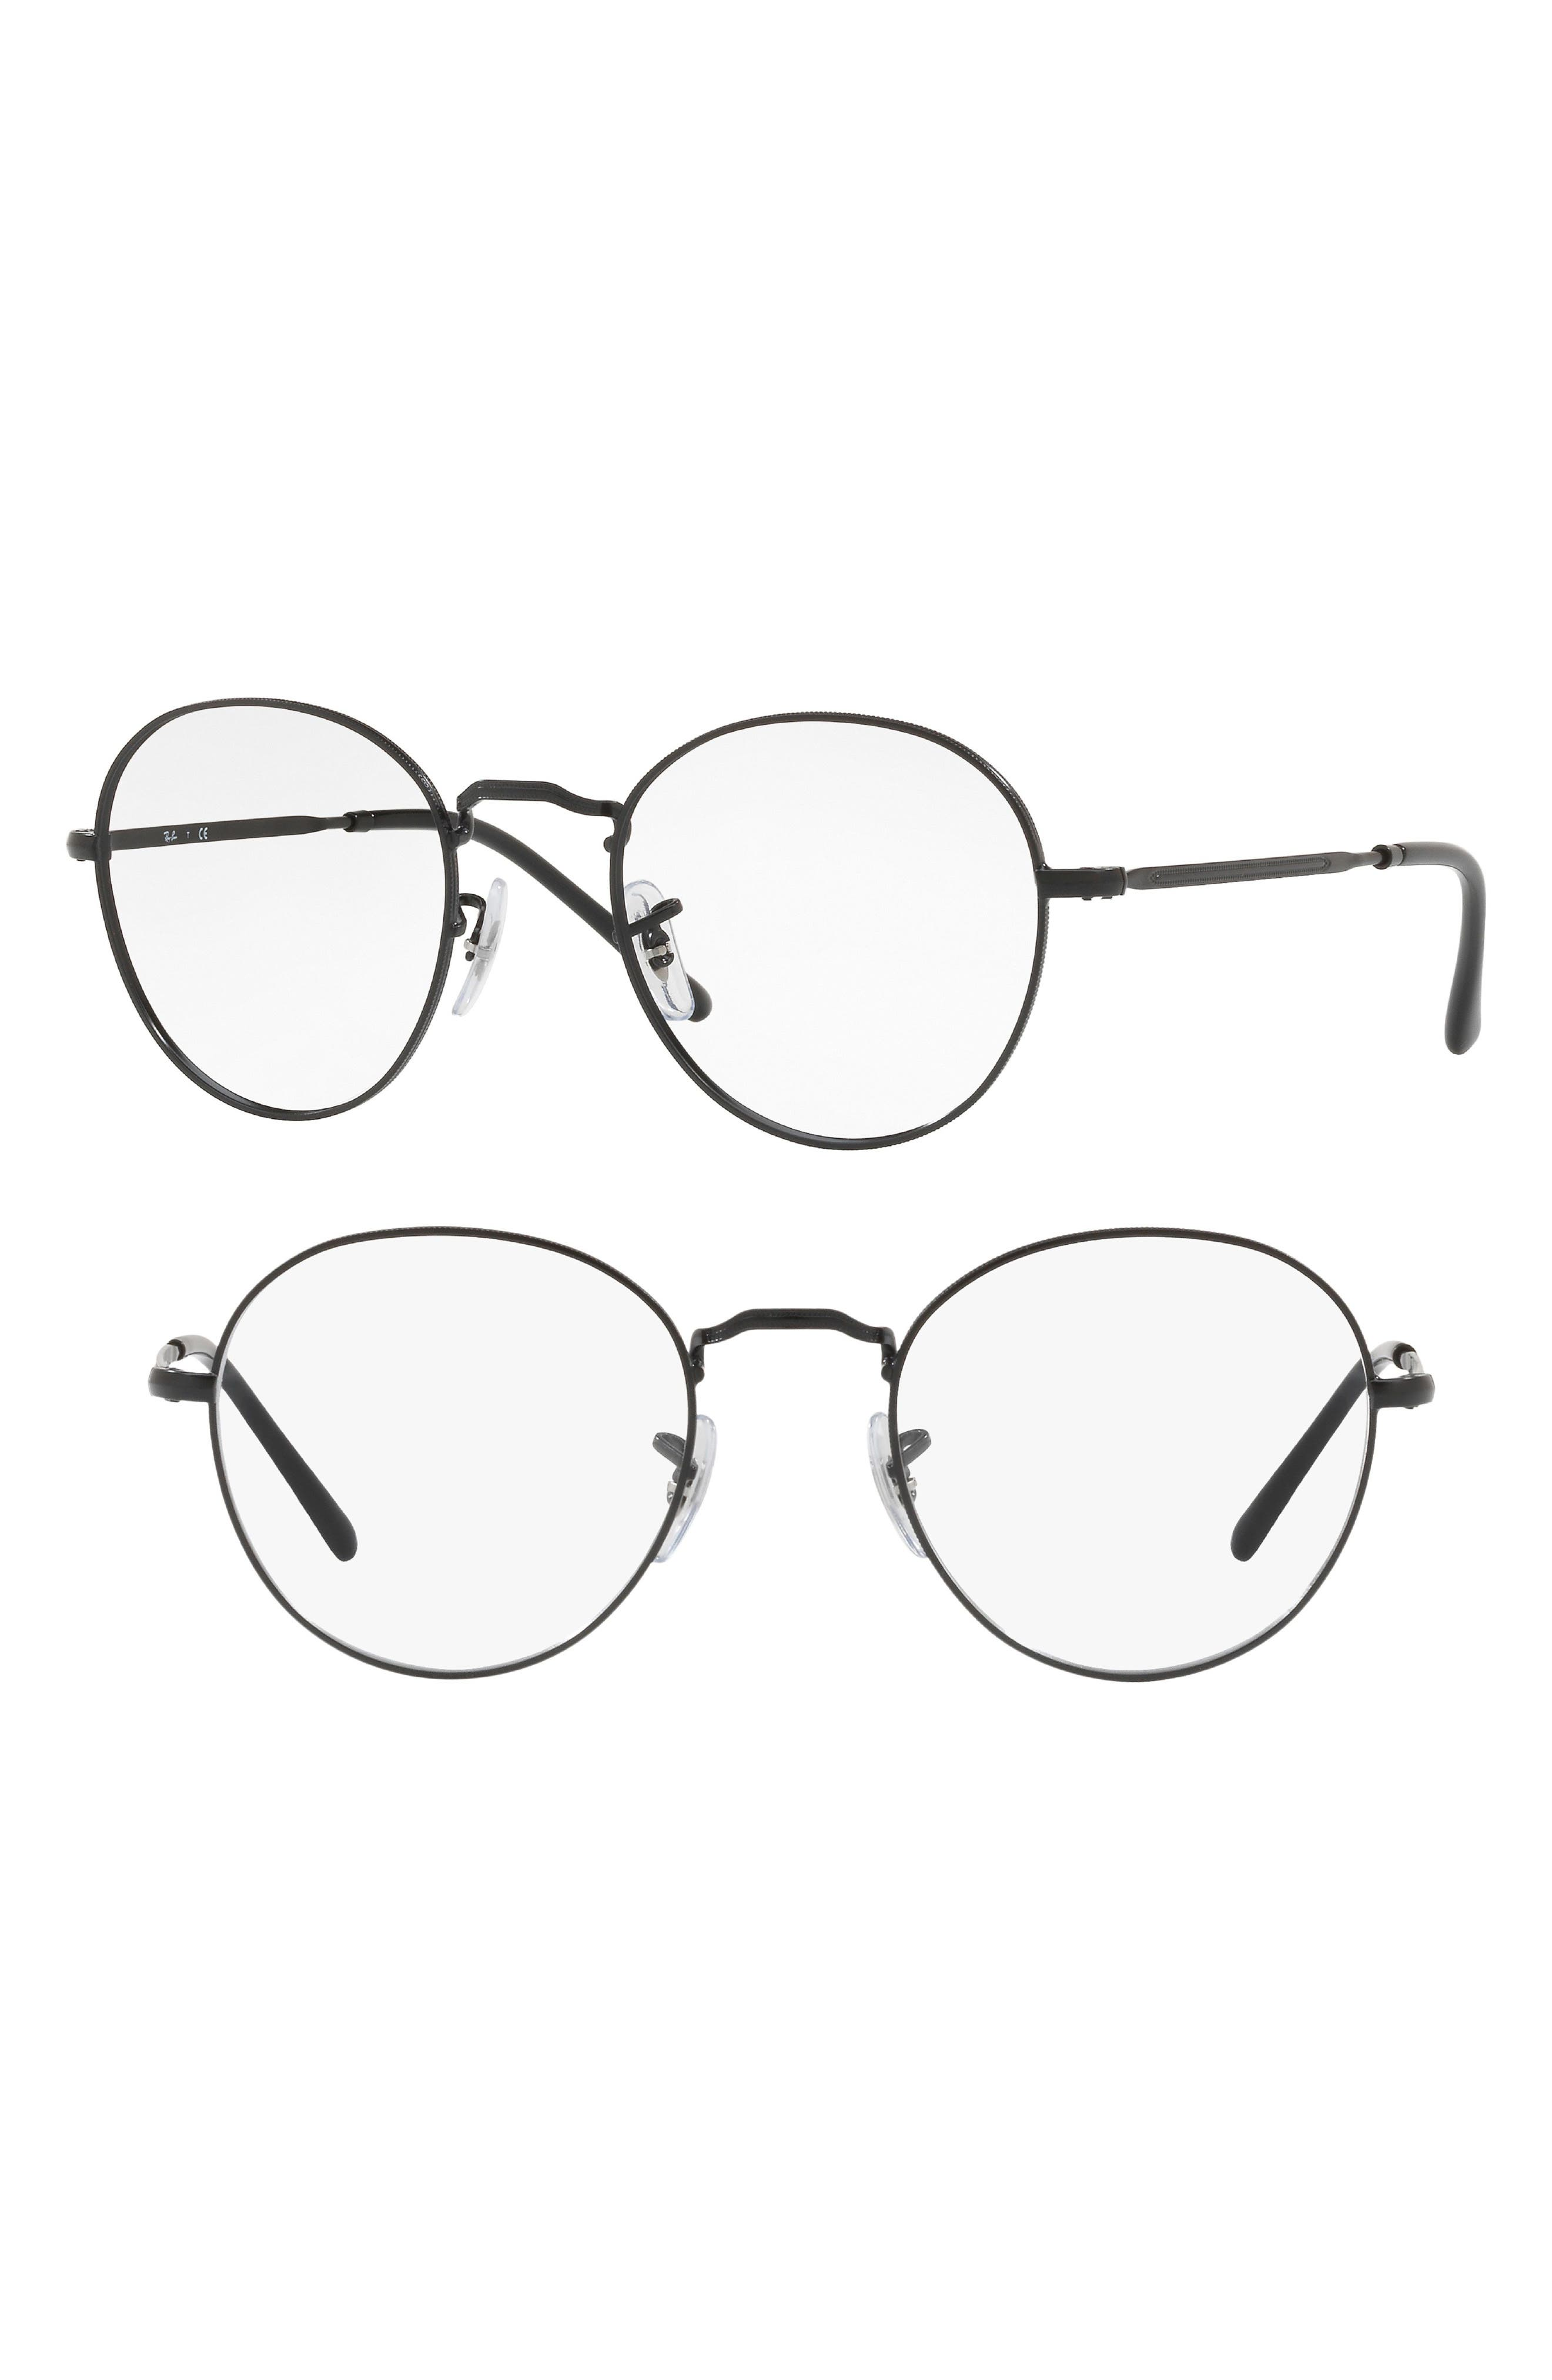 3582V 51mm Optical Glasses,                             Main thumbnail 1, color,                             001